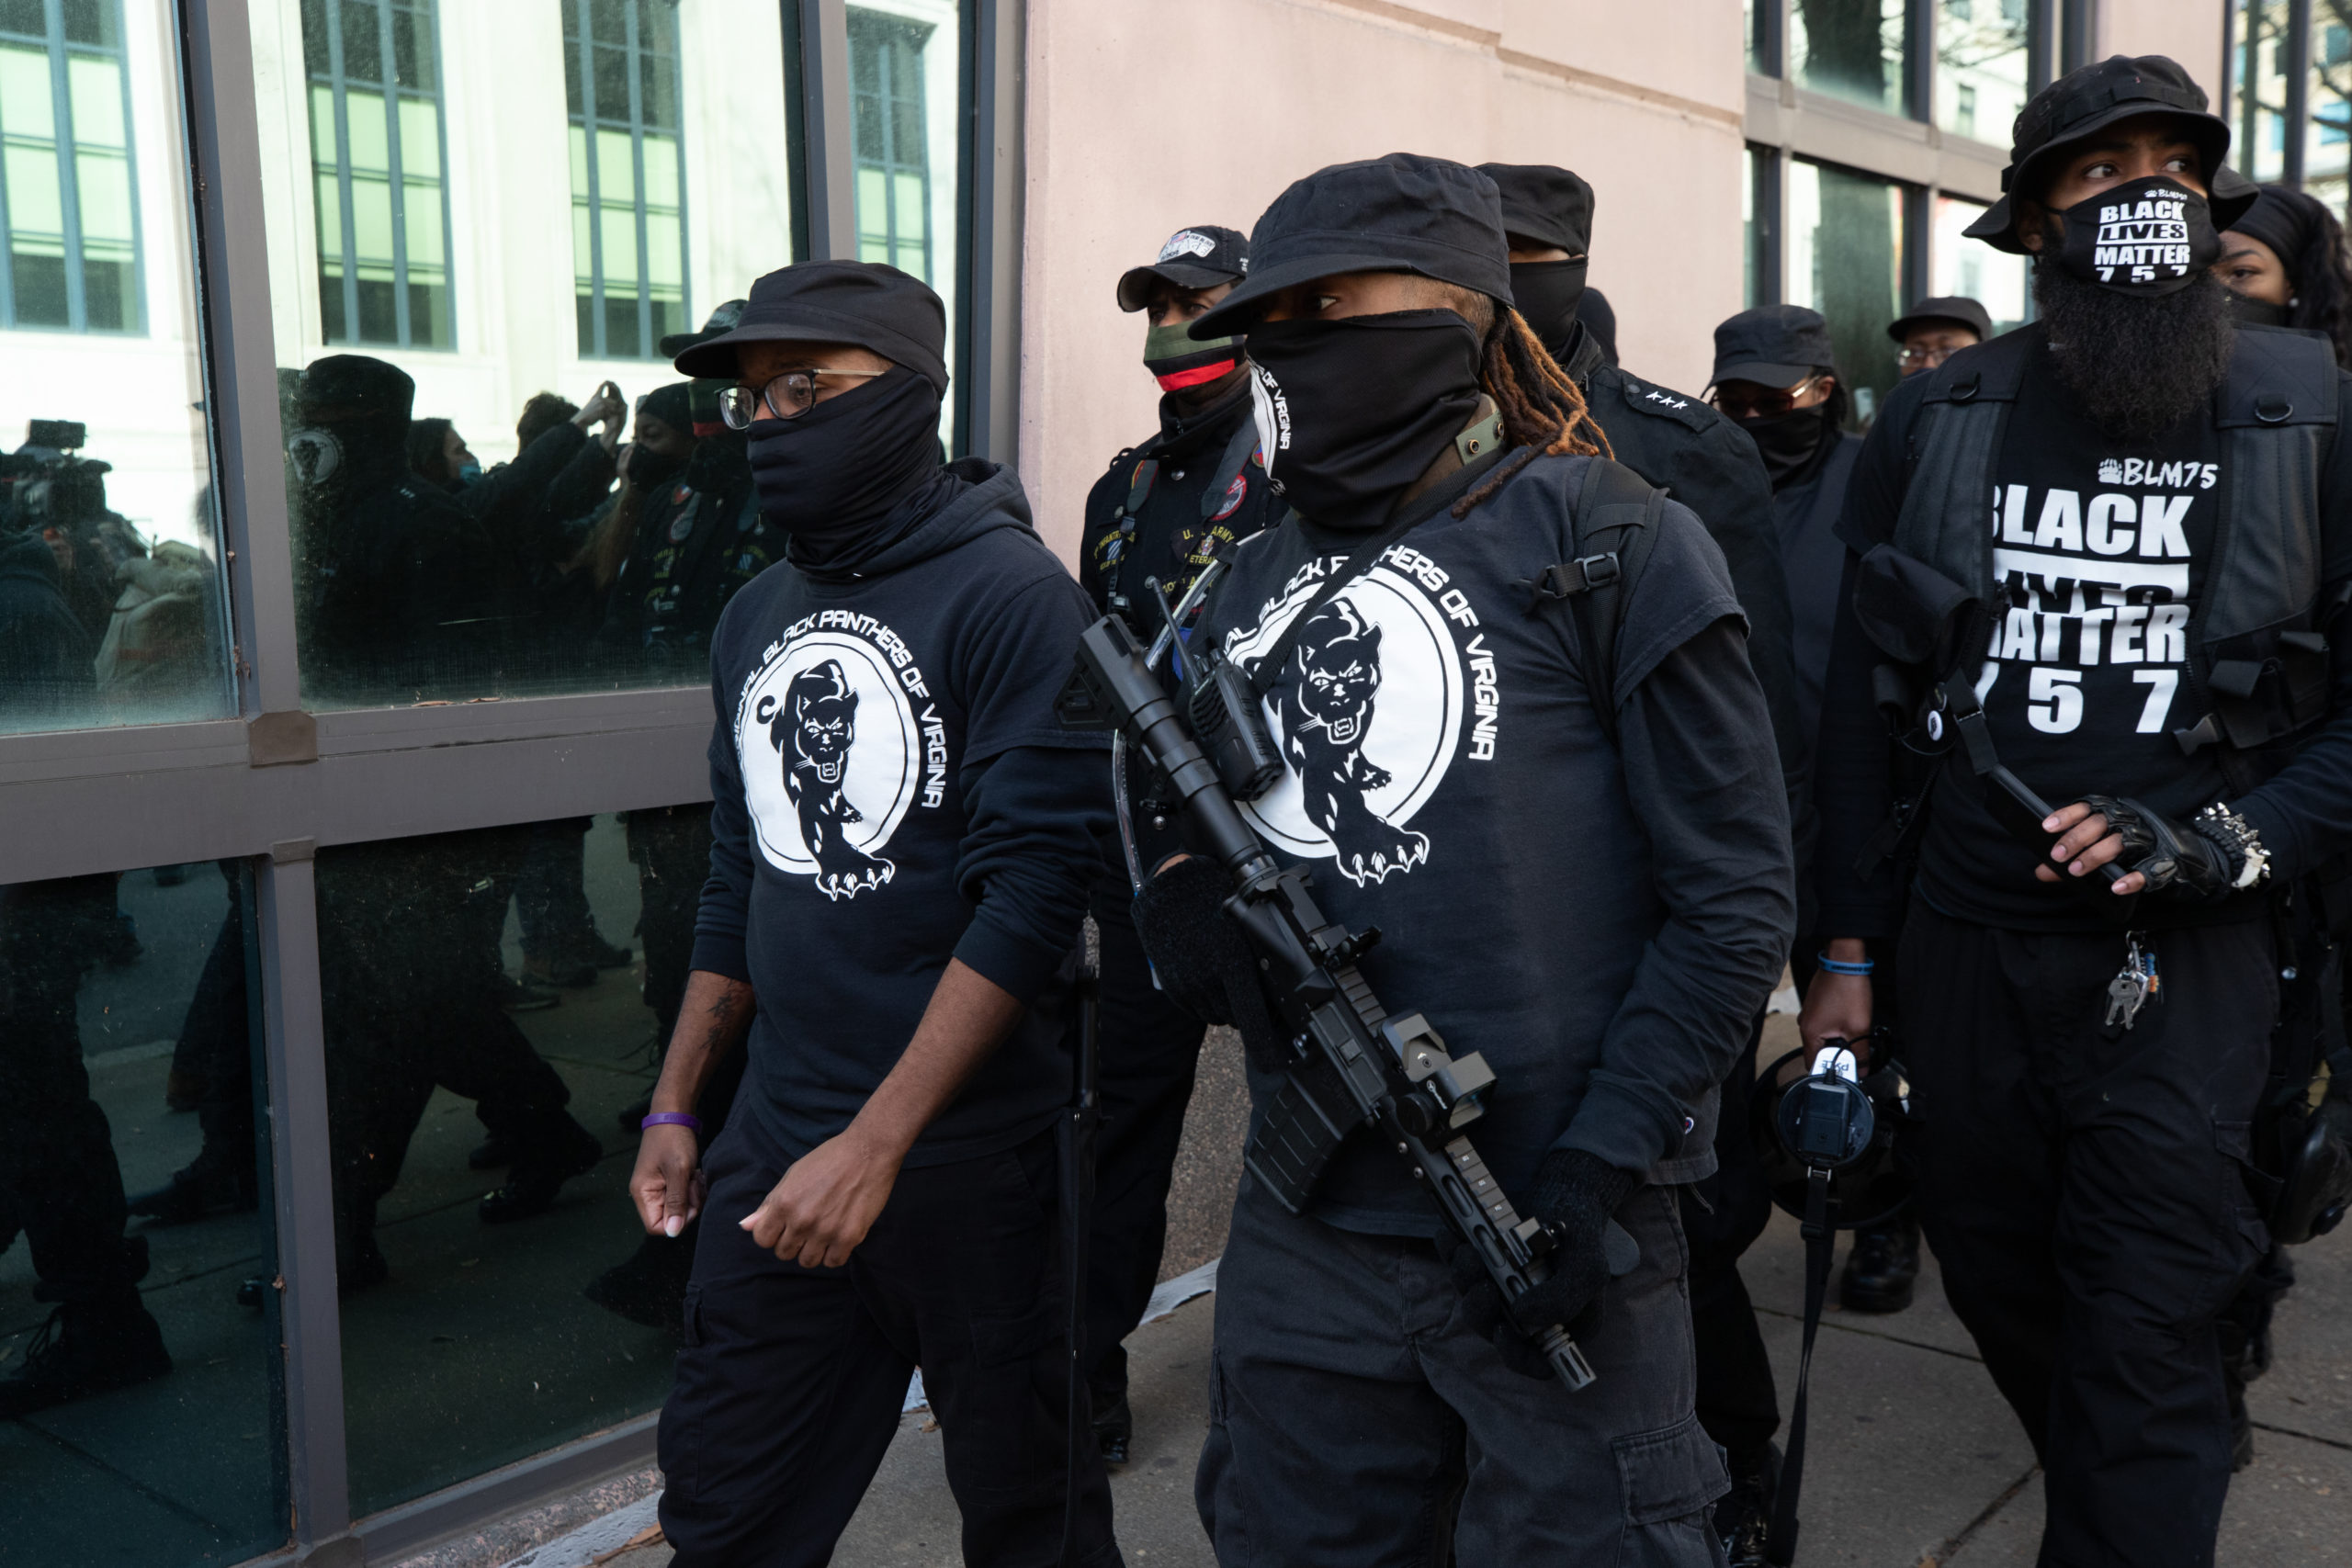 """Armed members of the """"Original Black Panthers"""" participated in Lobby Day demonstrations in Richmond, Virginia on January 18, 2021. (Kaylee Greenlee - Daily Caller News Foundation)"""